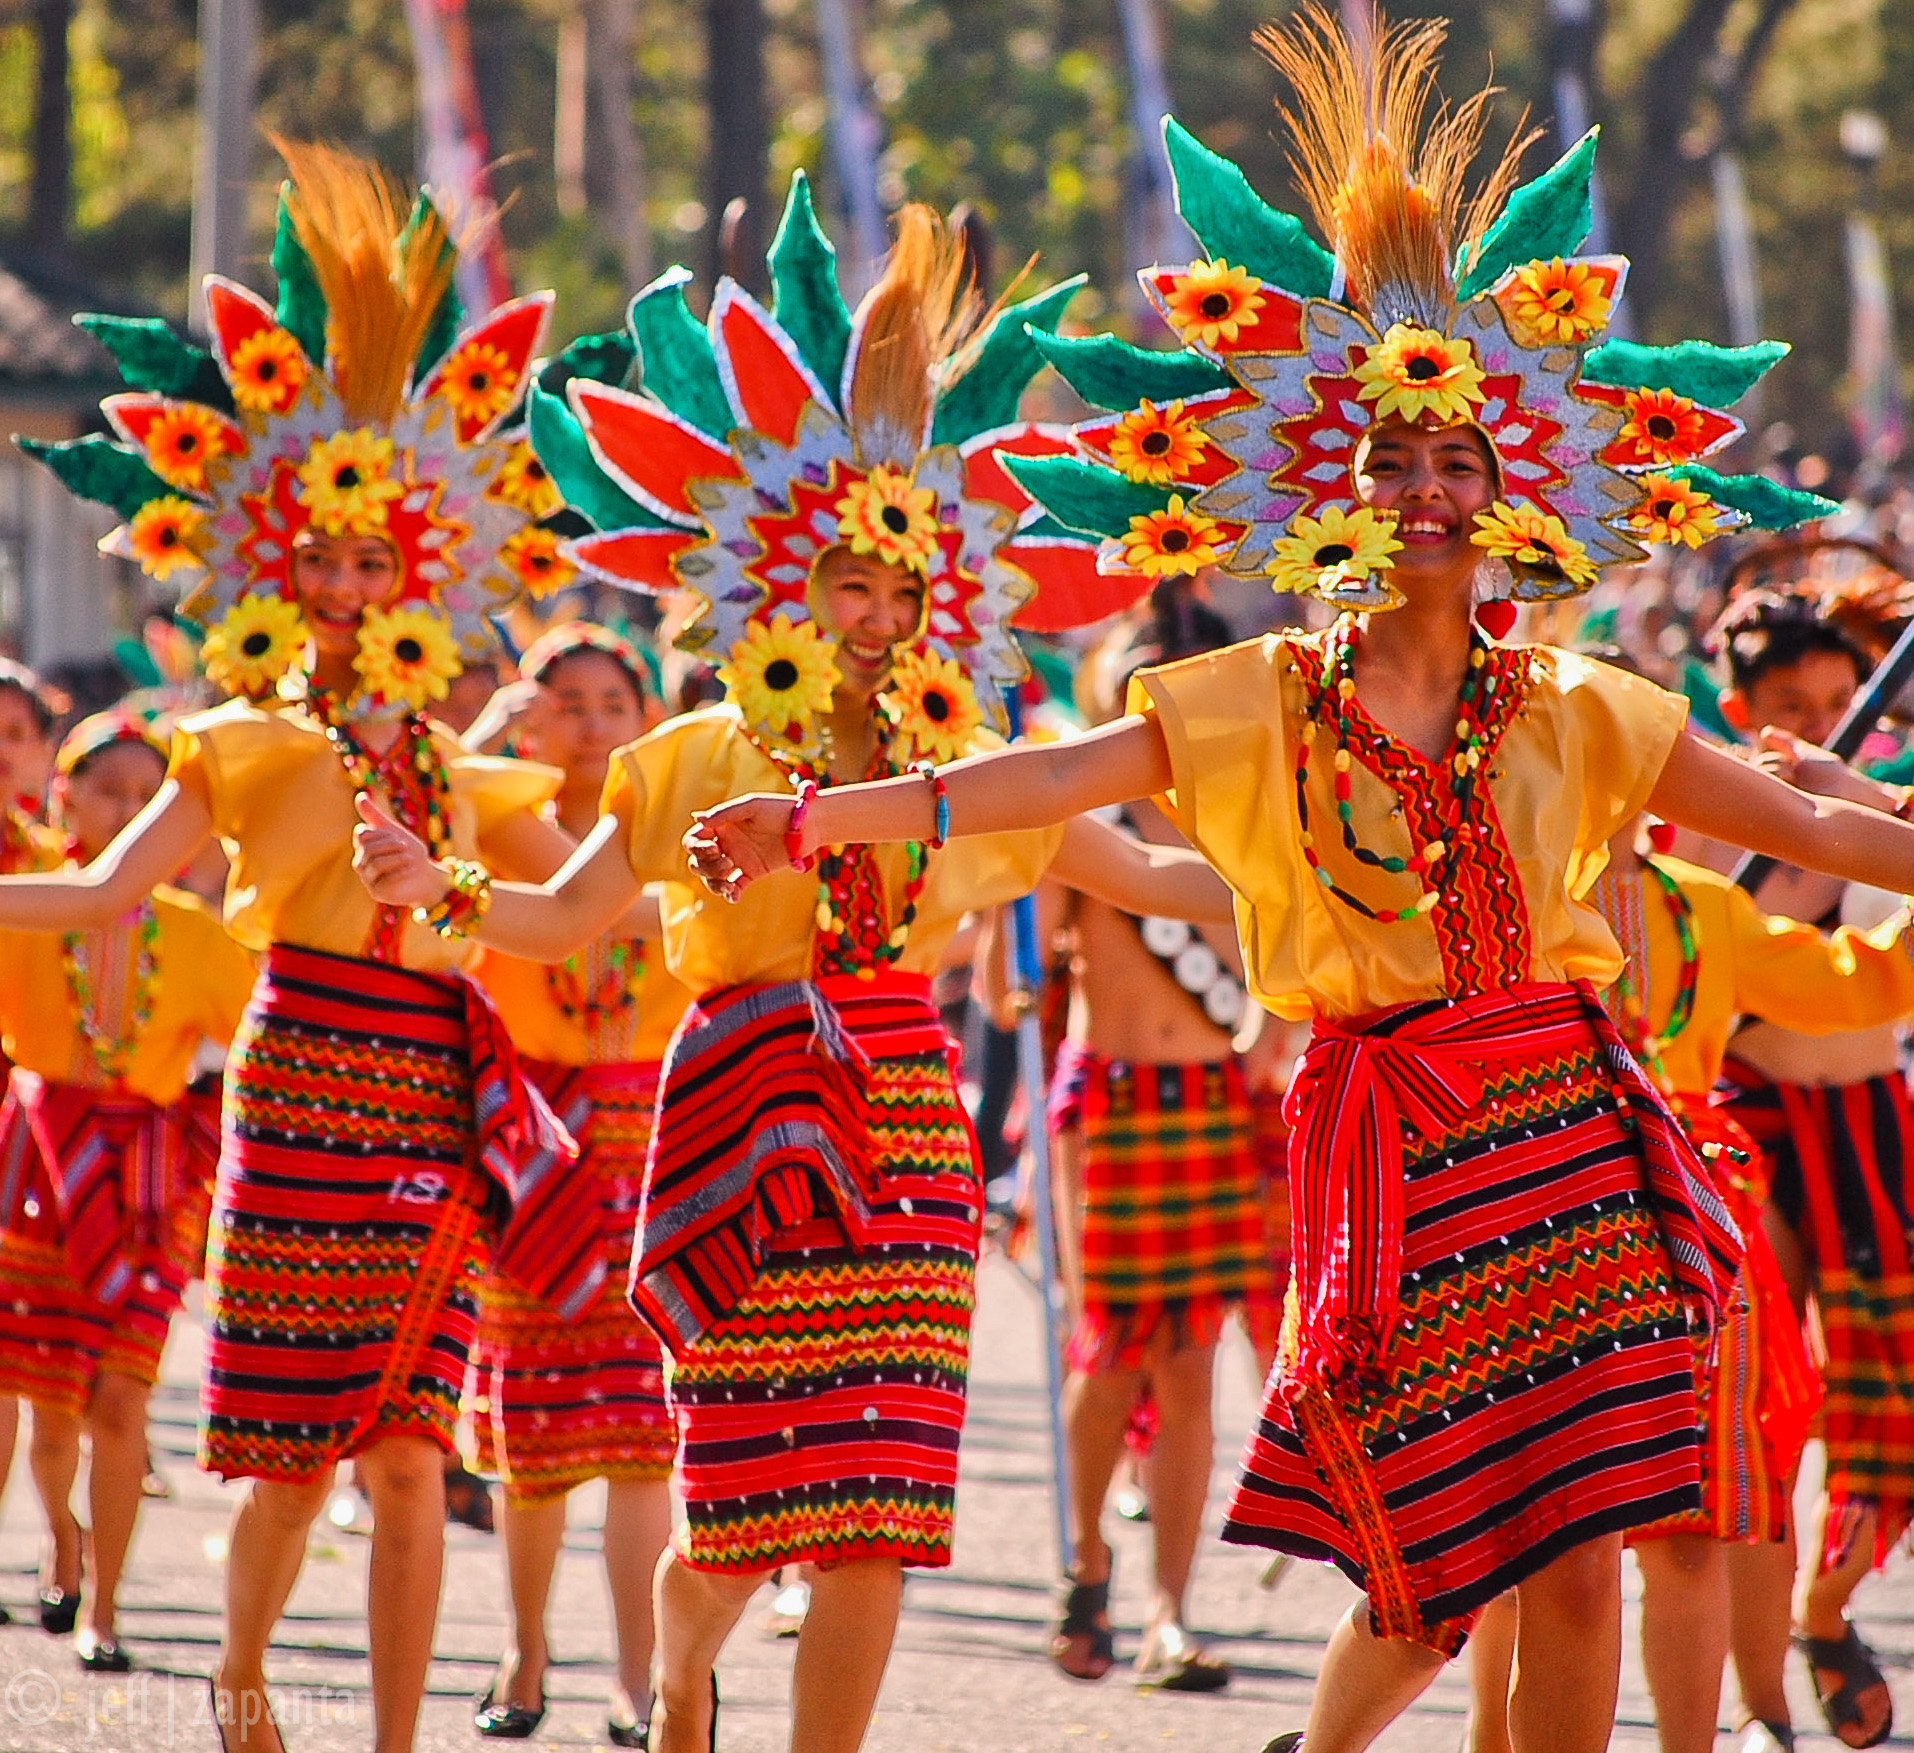 panagbenga festival Panagbenga festival is a 1 day event being held on 1st february to 6th march 2018 at the panagbenga park in baguio, philippines this event showcases products like the blend of cultural influences from malaysia and other south east asian countries, a whole week, baguio streets come alive with spectacular rhythmic dances, pulsating songs and colourful floral arrangements that will interest any .